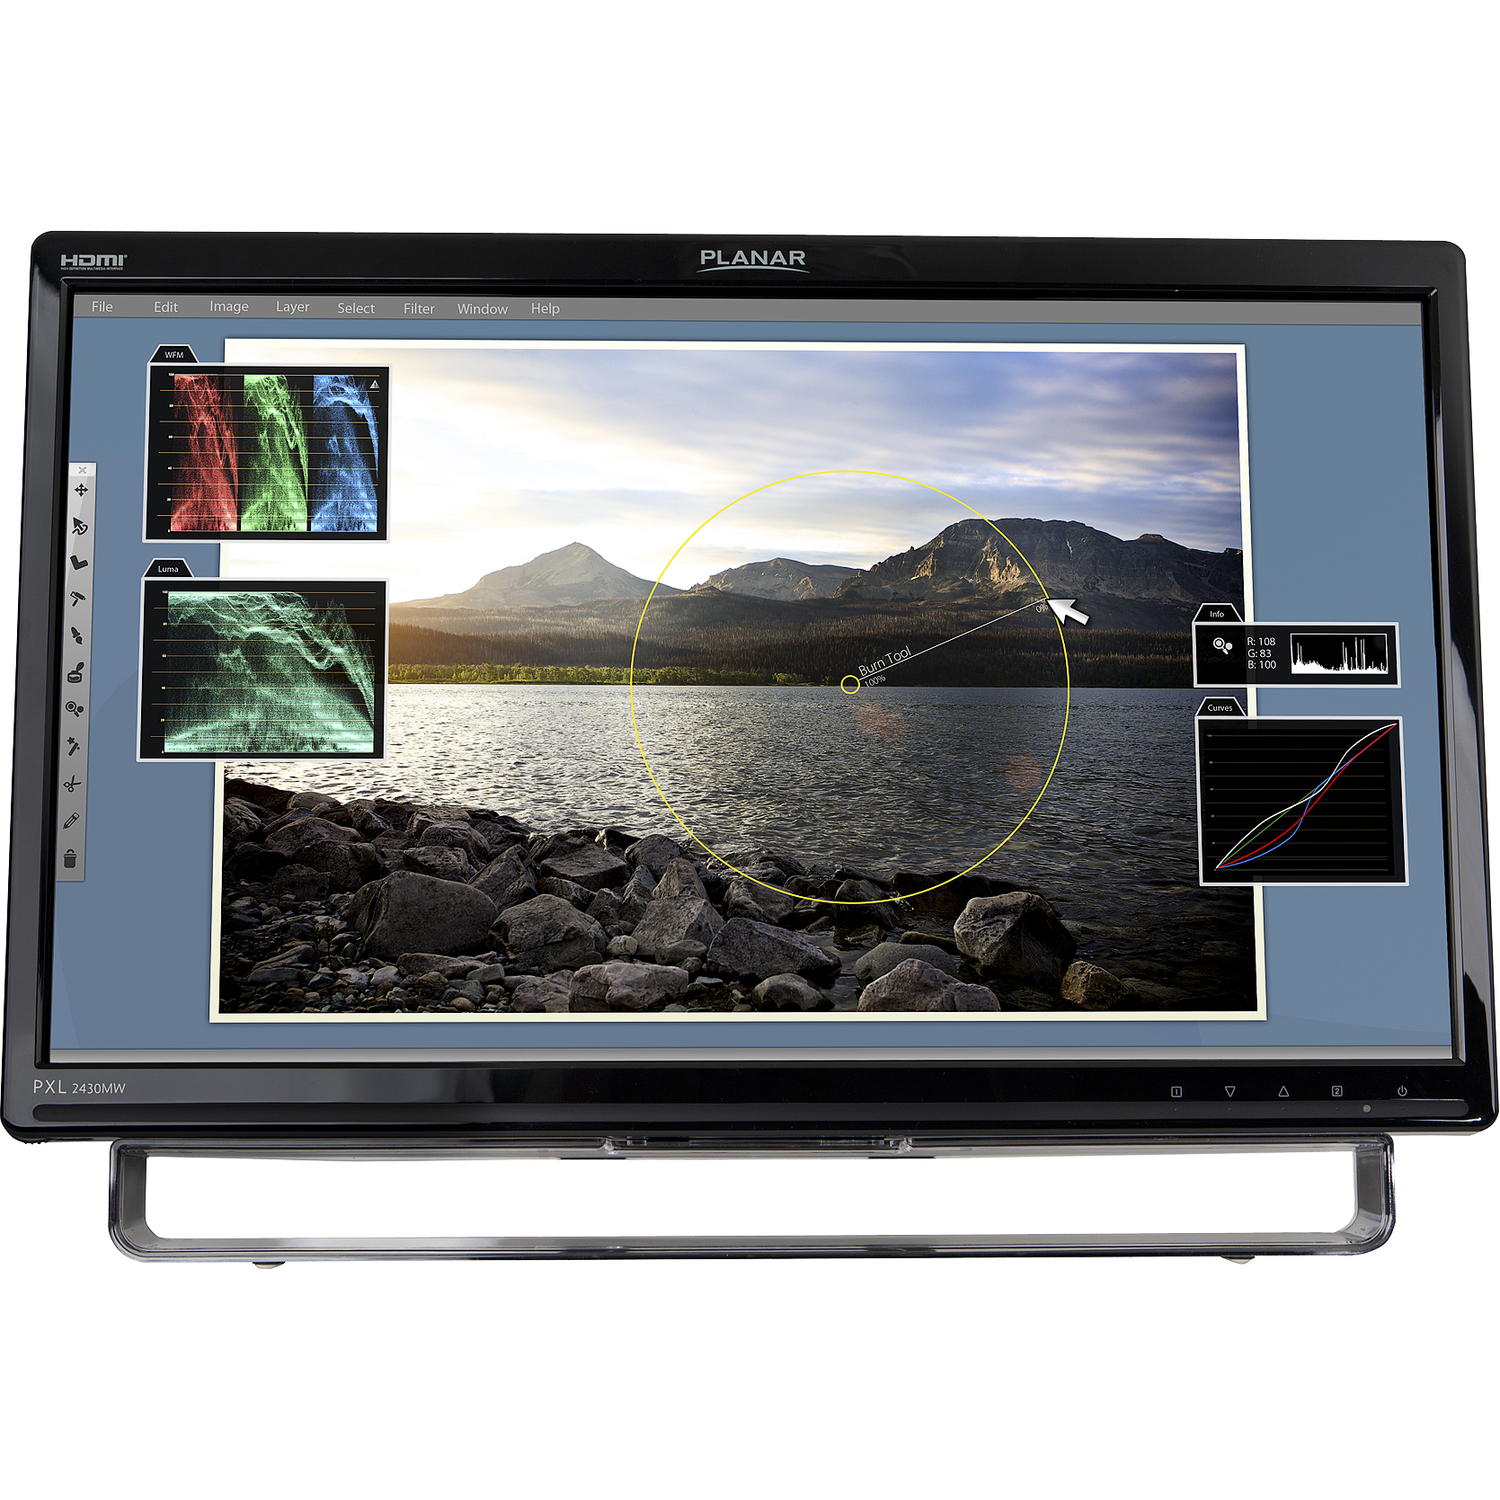 """Planar PXL2430MW 24"""" LCD Touchscreen Monitor - 16:9 - 5 ms_subImage_1"""